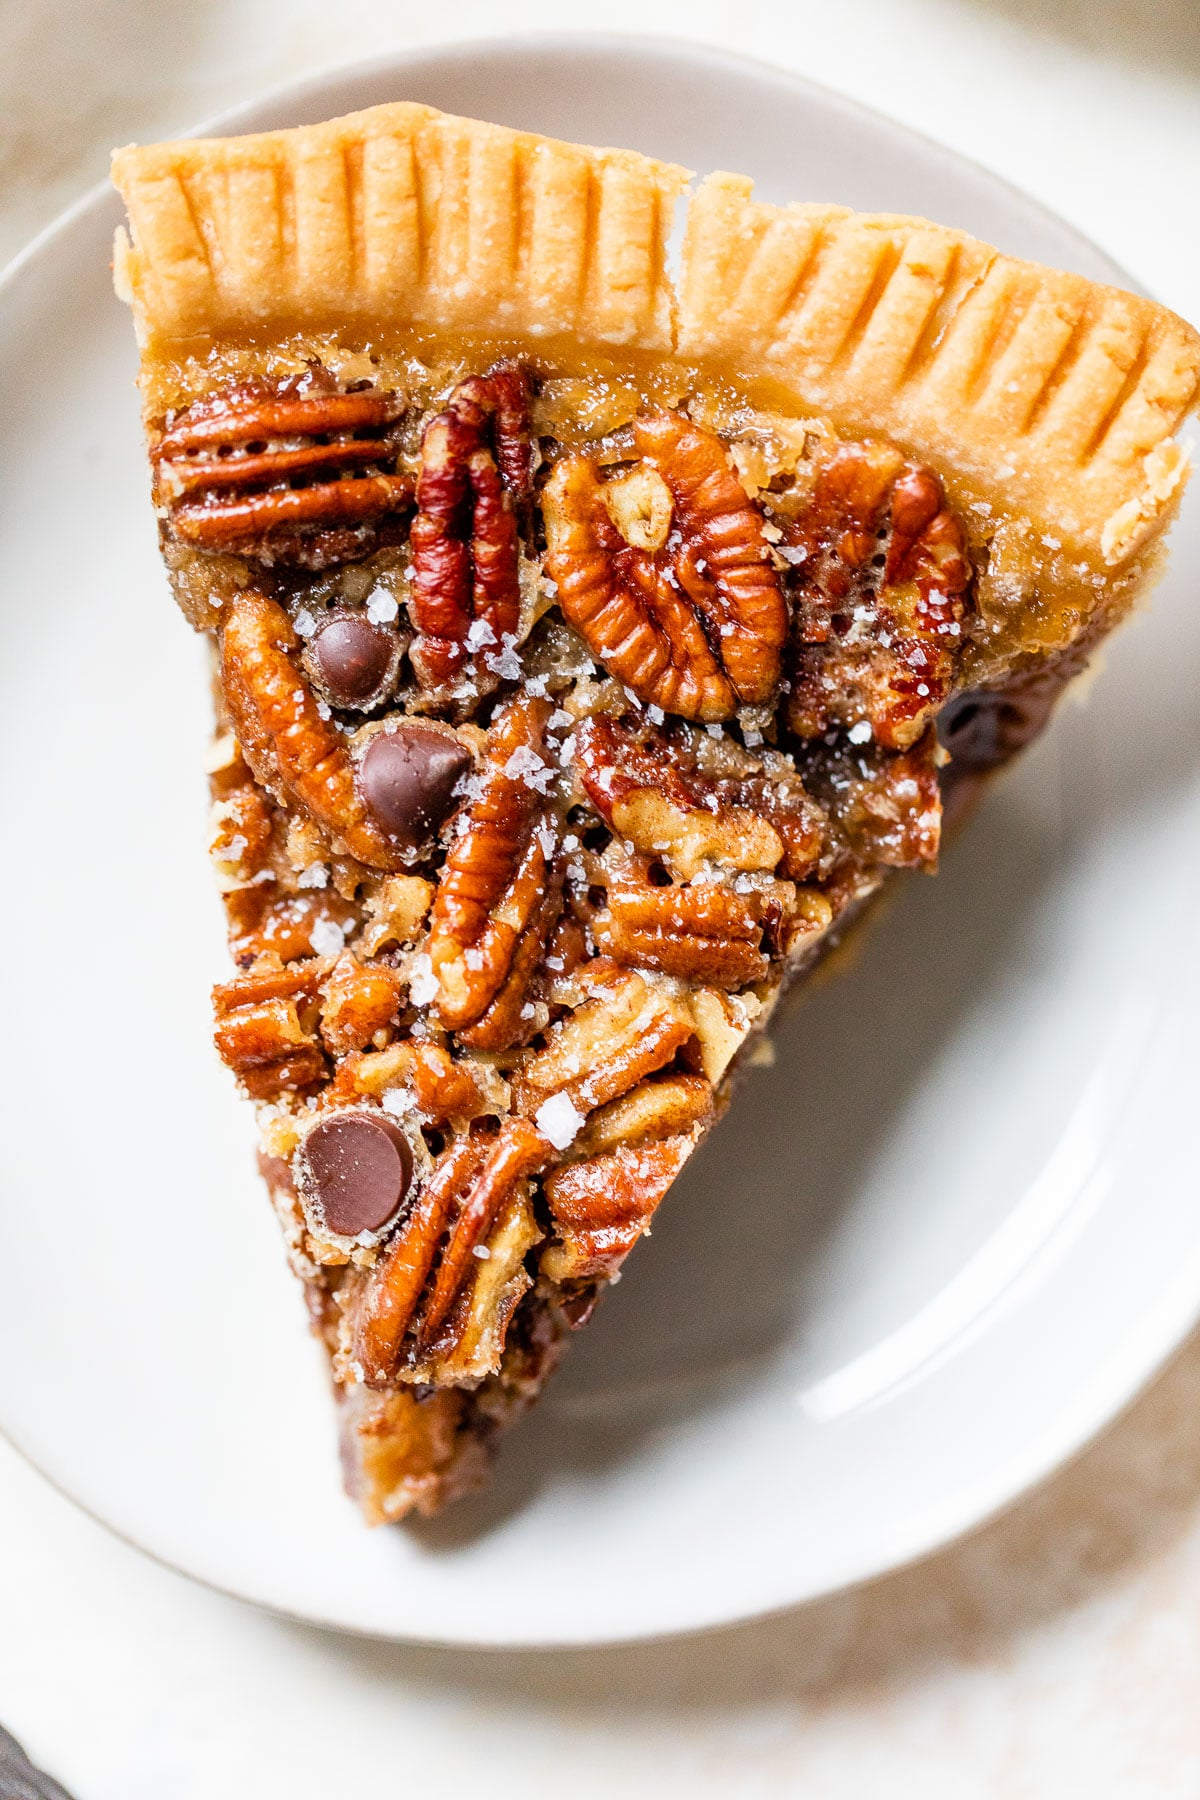 a close up of a slice of pecan pie